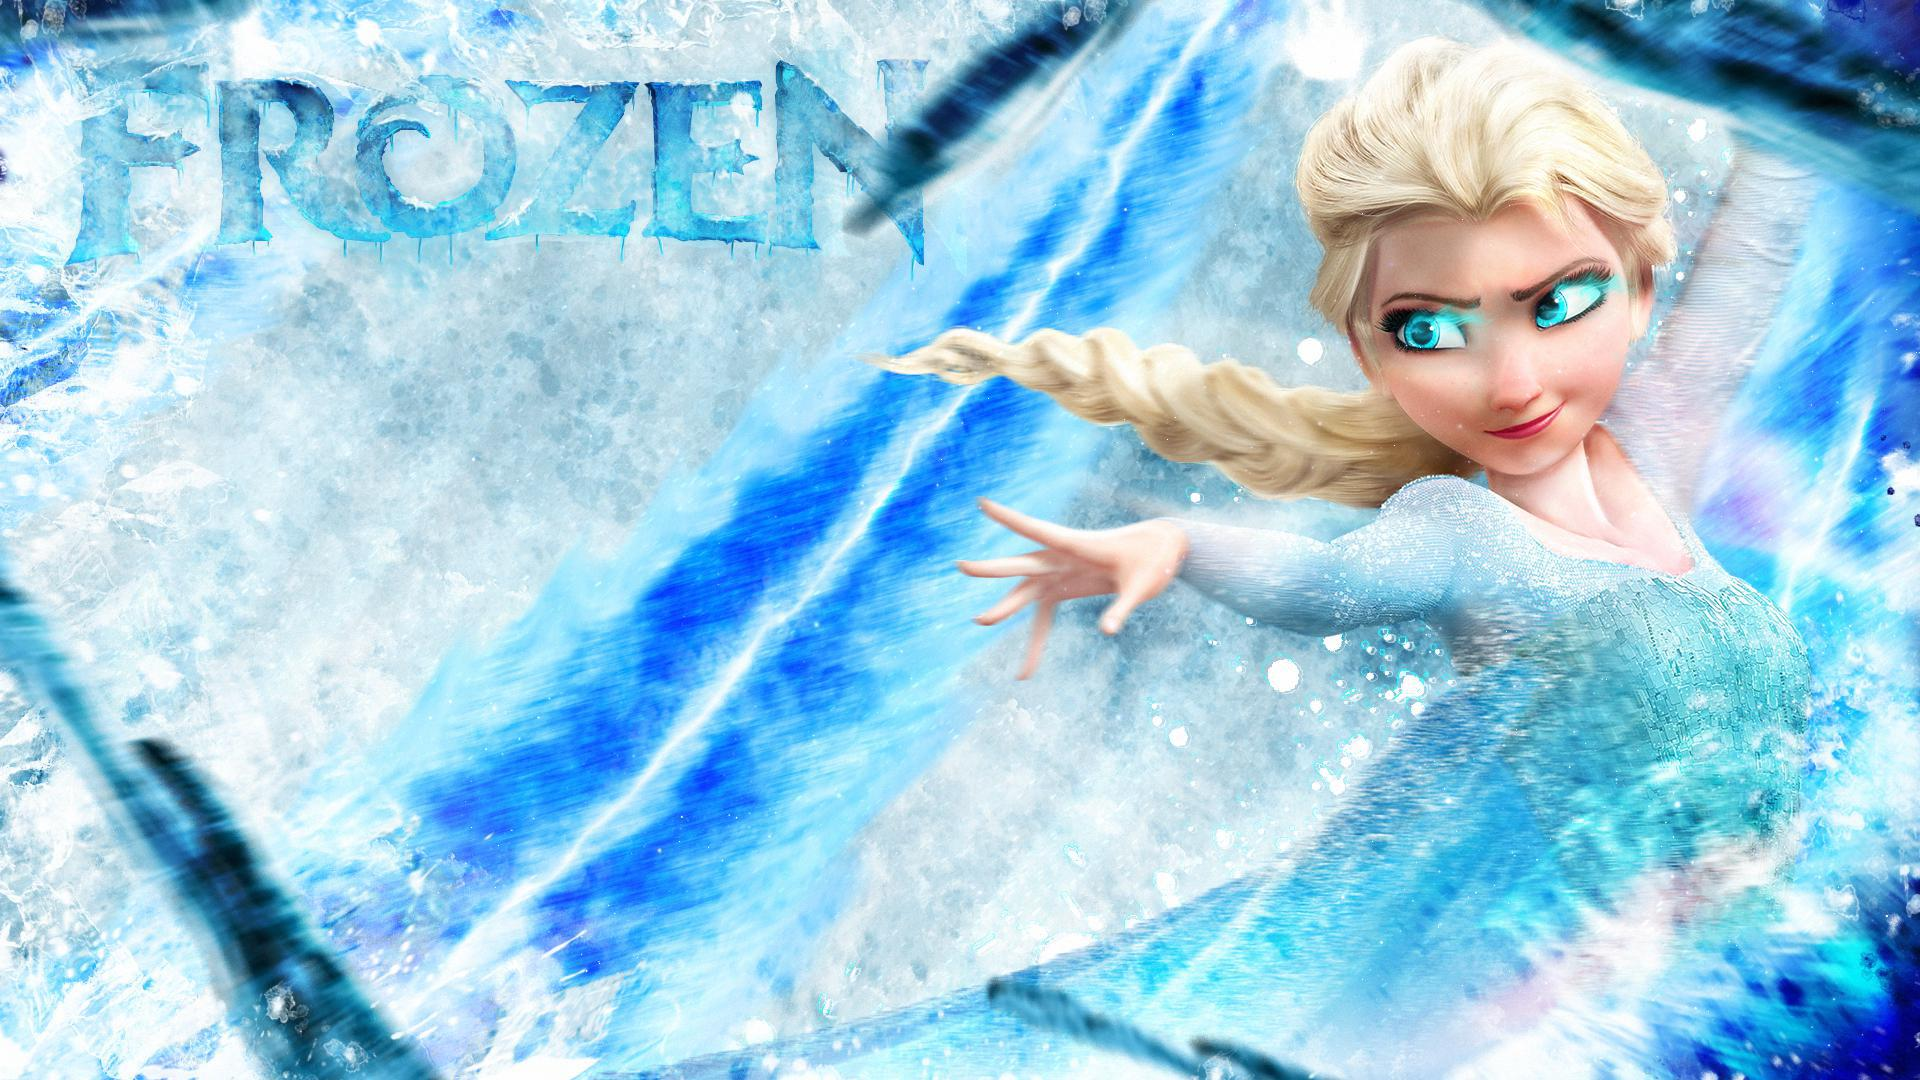 HD Frozen Disney Elsa Eyes Wallpaper Download   139913 1920x1080